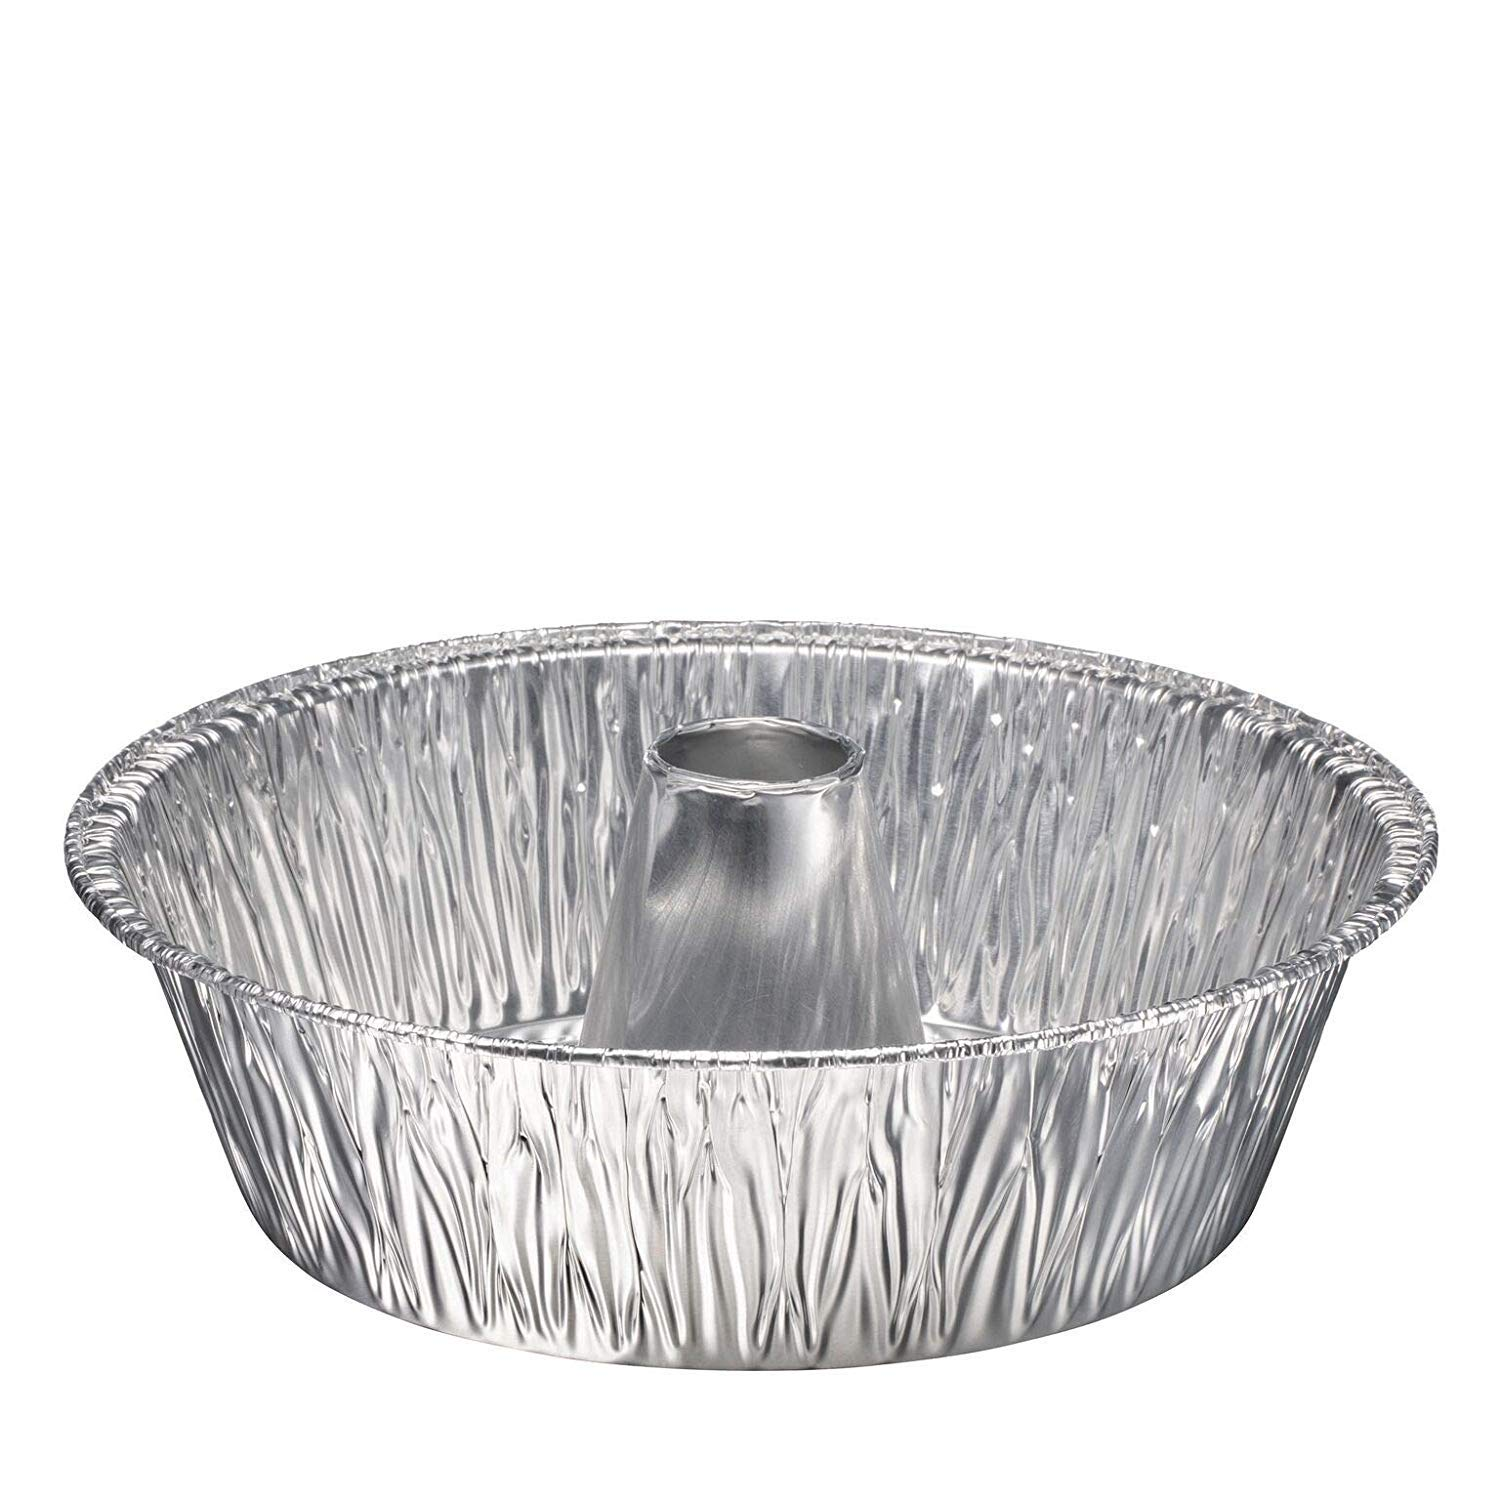 Disposable Round Cake Baking Pans – Aluminum Foil Bundt Tube Tin Great for Baking Decorative Display, Parties (10 Pans, 8-inch Round)